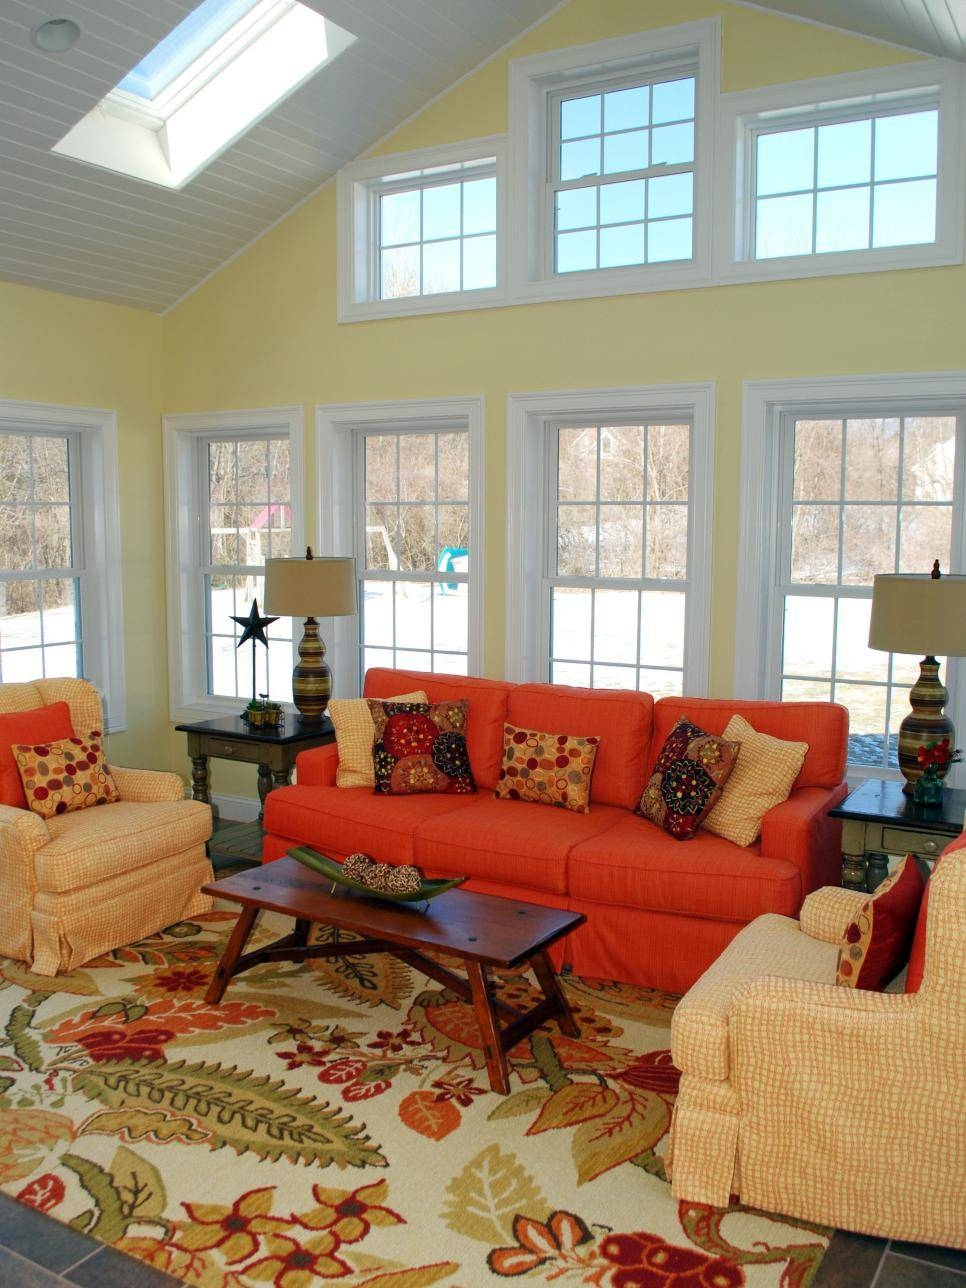 Slipcovers For Sofas, Chairs & Ottomans | Hgtv Regarding Colorful Sofas And Chairs (View 14 of 15)